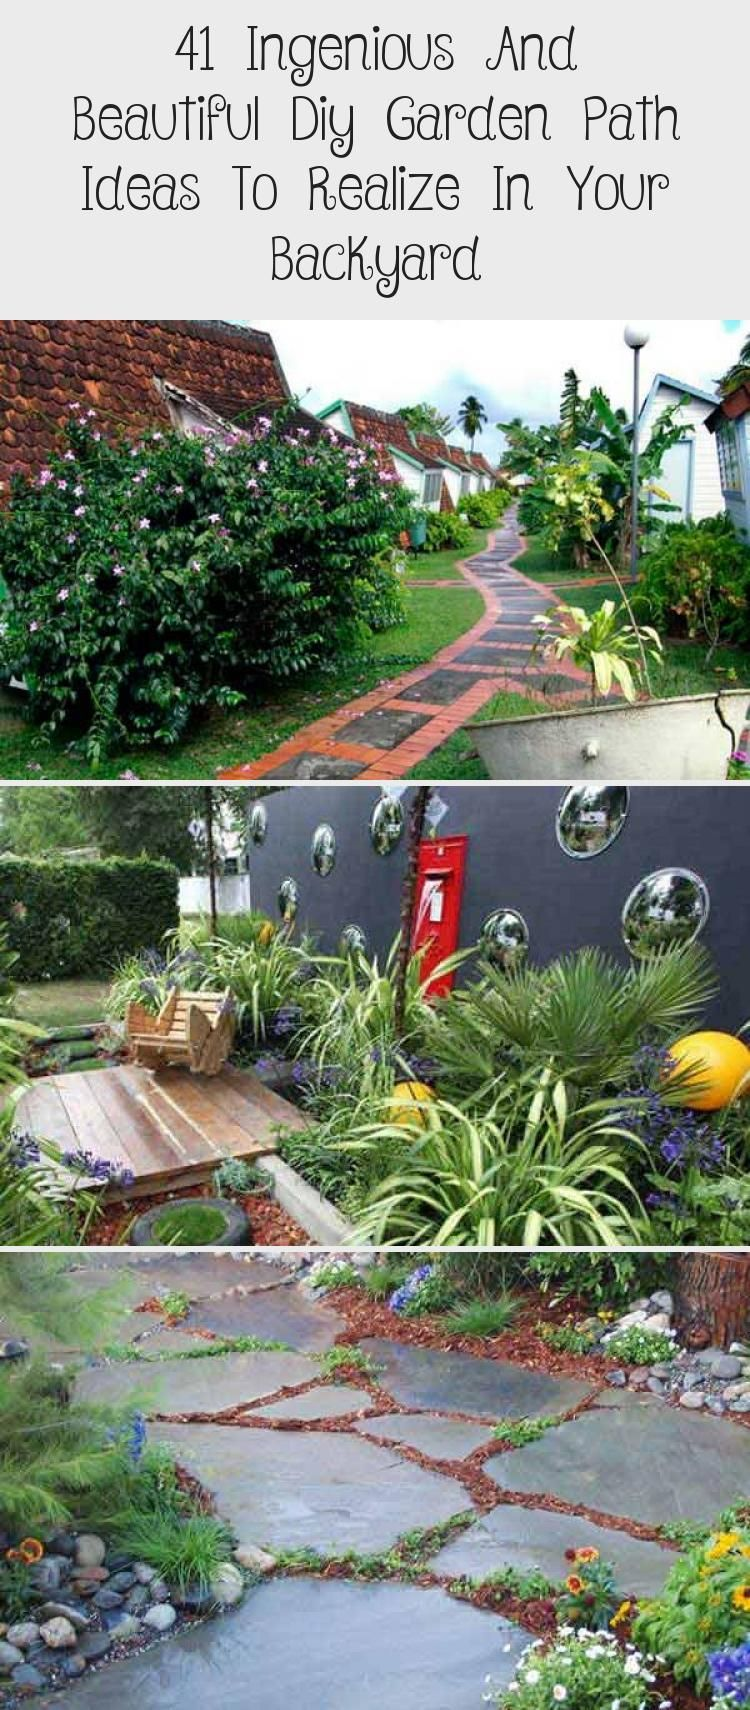 Photo of 41 Ingenious And Beautiful Diy Garden Path Ideas To Realize In Your Backyard – Pinokyo